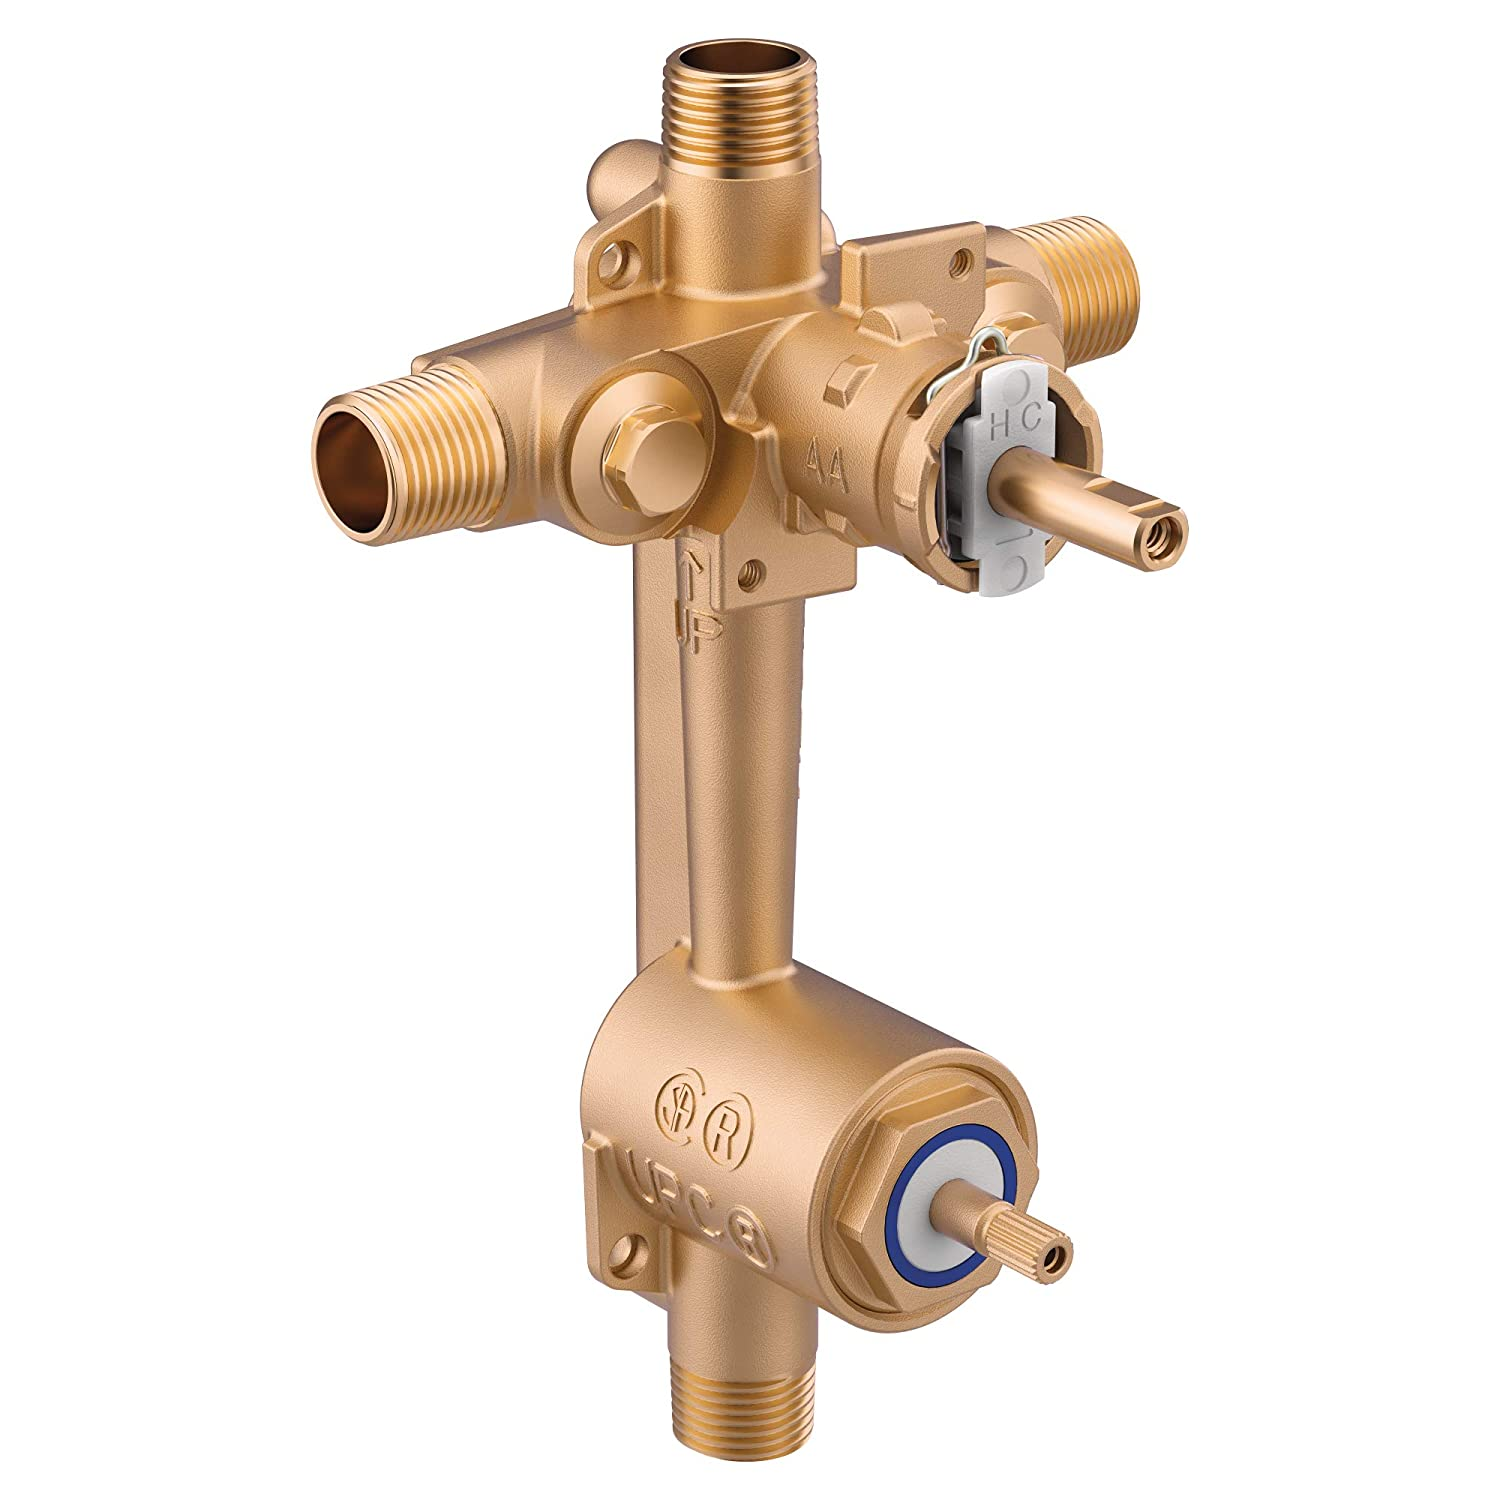 Moen 2551 Posi-Temp Pressure Balancing Valve with Built In 3-Function Transfer Valve, Includes Stops, CC/IPS